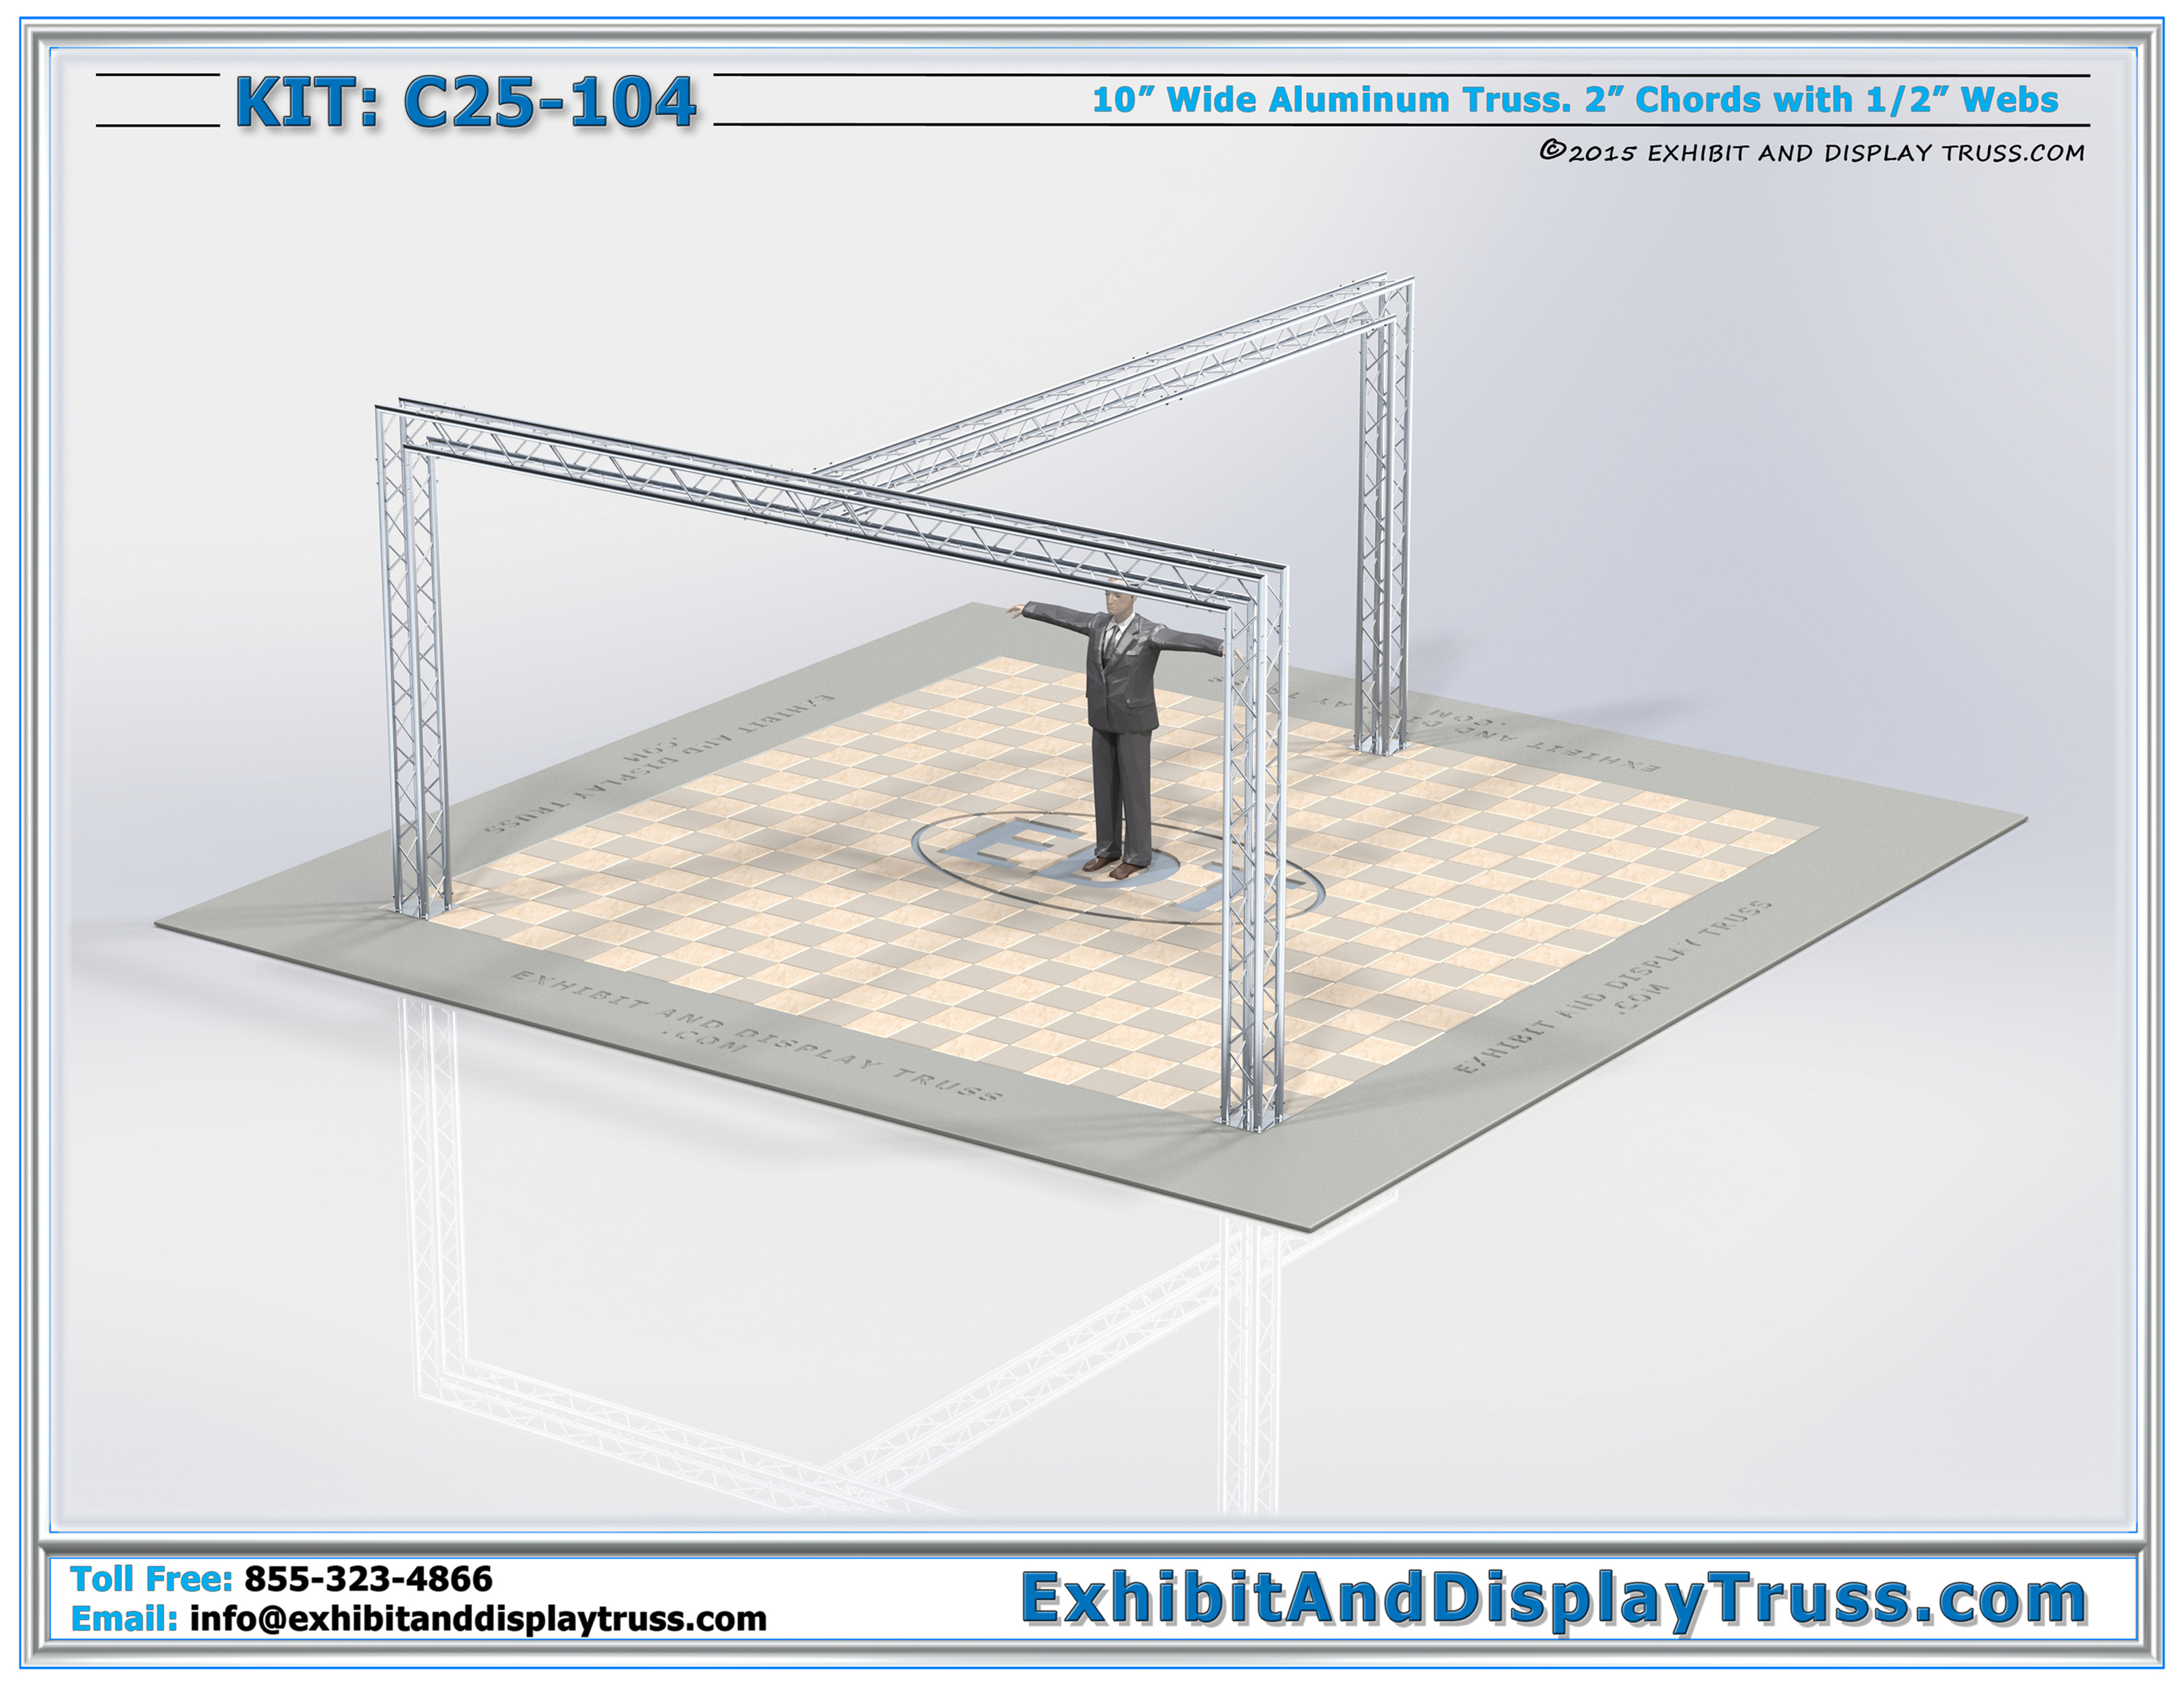 20 X 20 Exhibit Display Kits C25 104